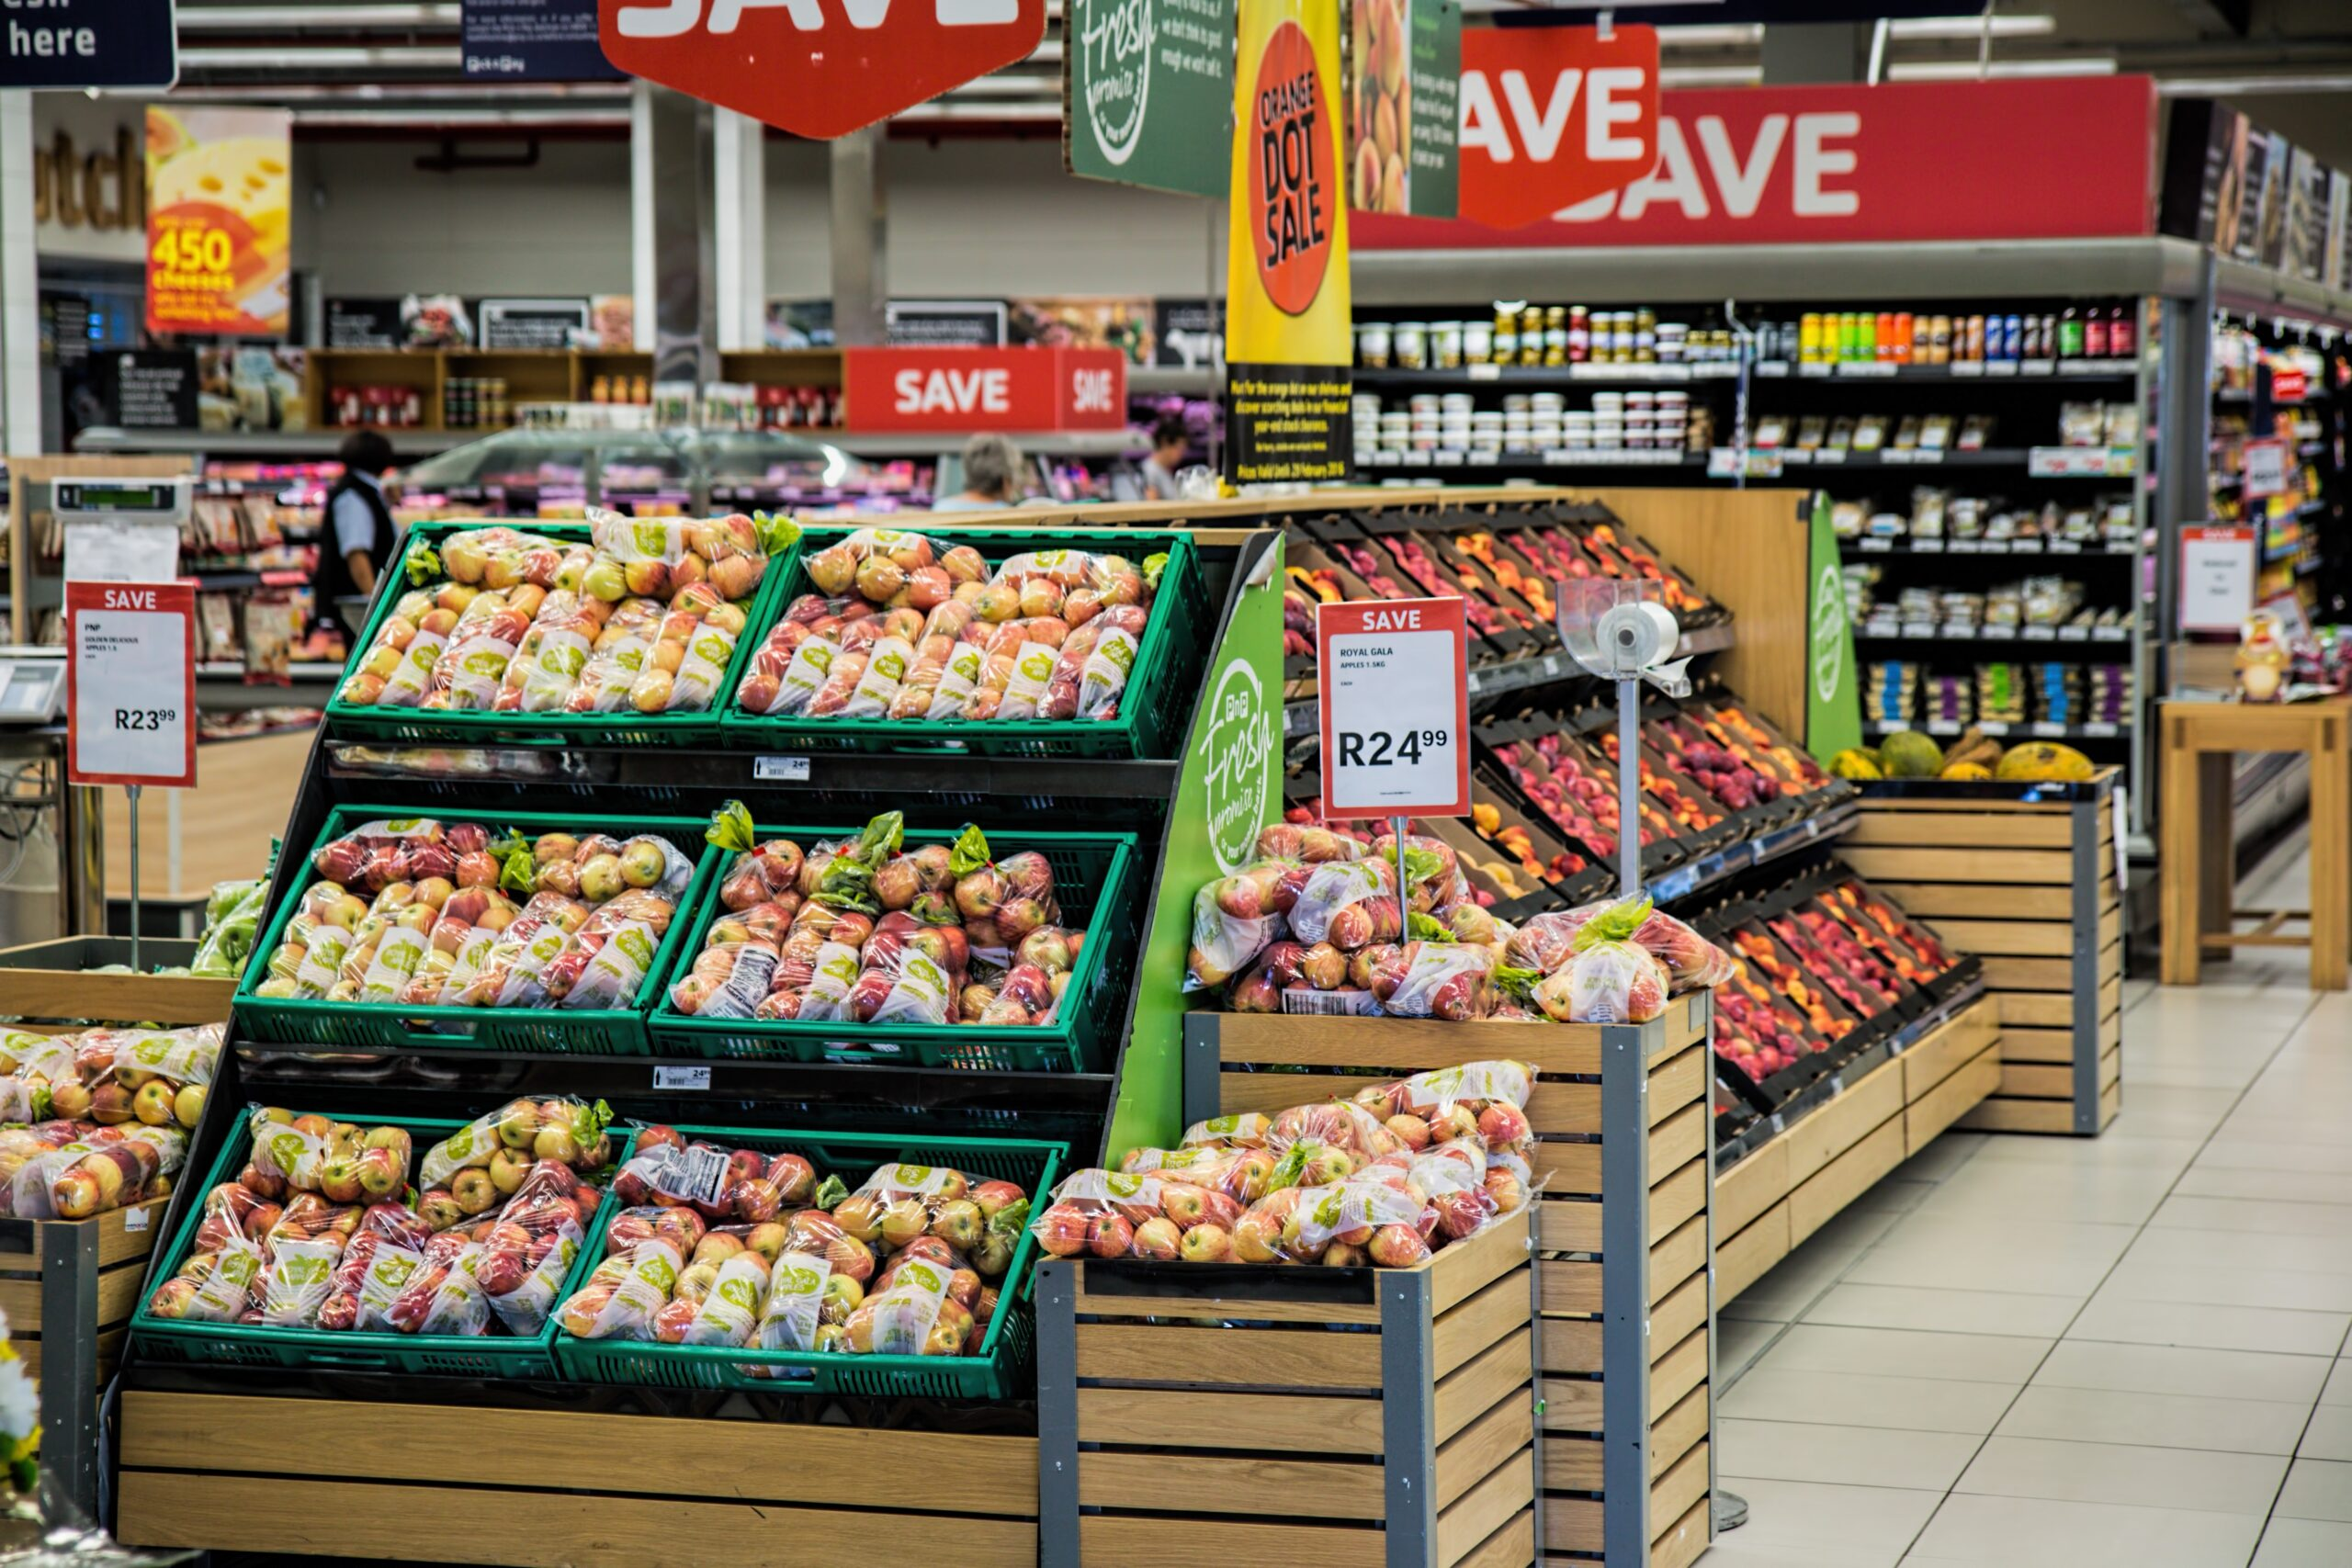 COVID-19: Online Grocery Sees Growth